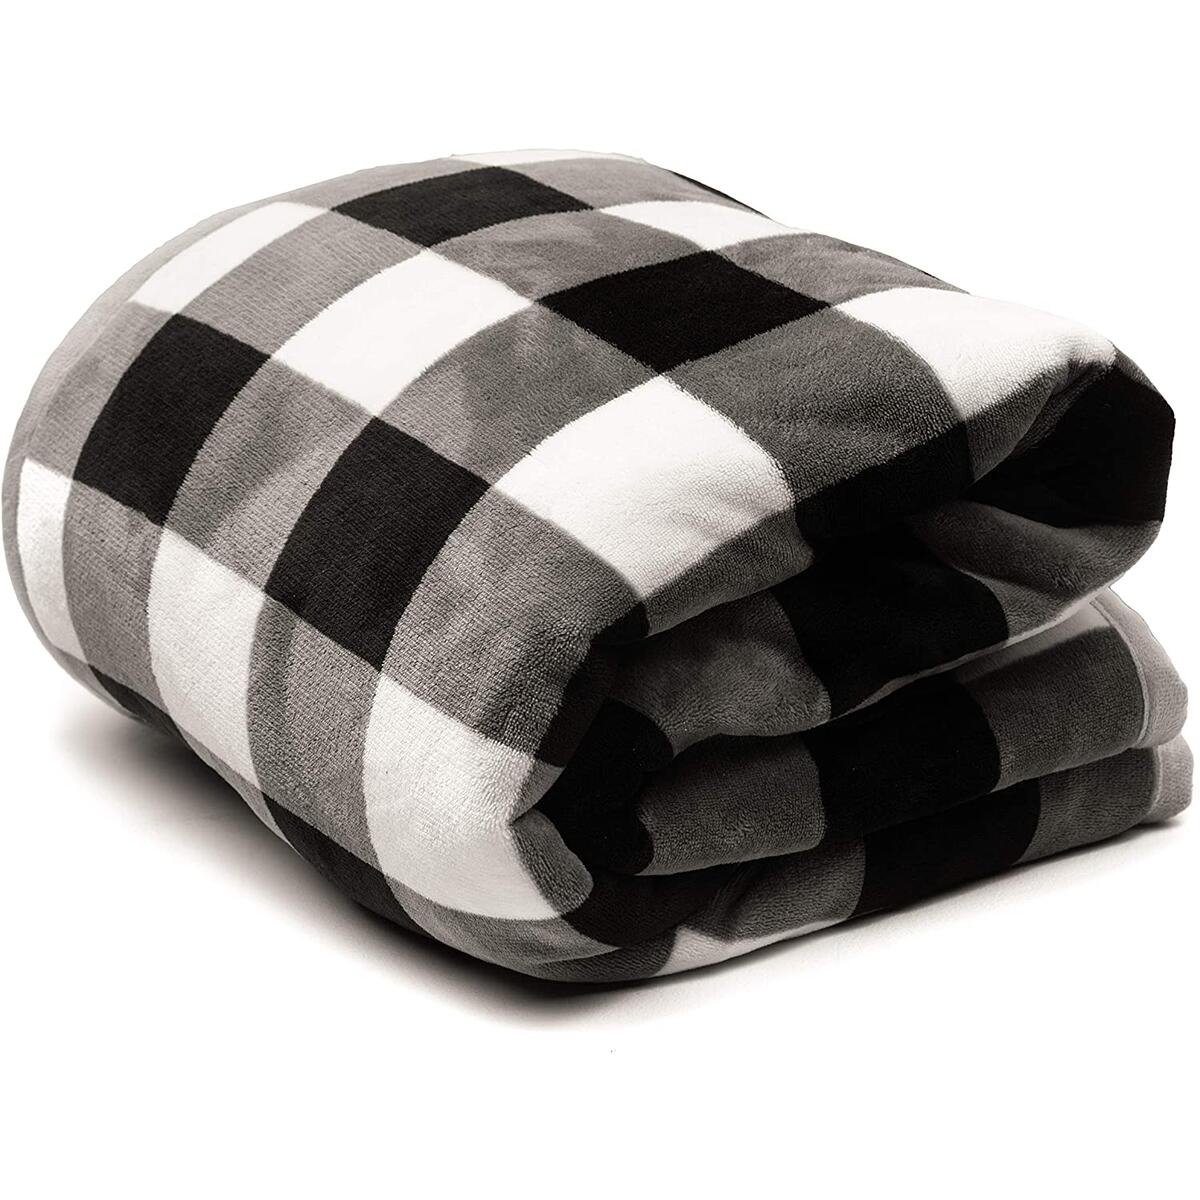 Muric Buffalo Check Sherpa Fleece Blanket and Pillow Set